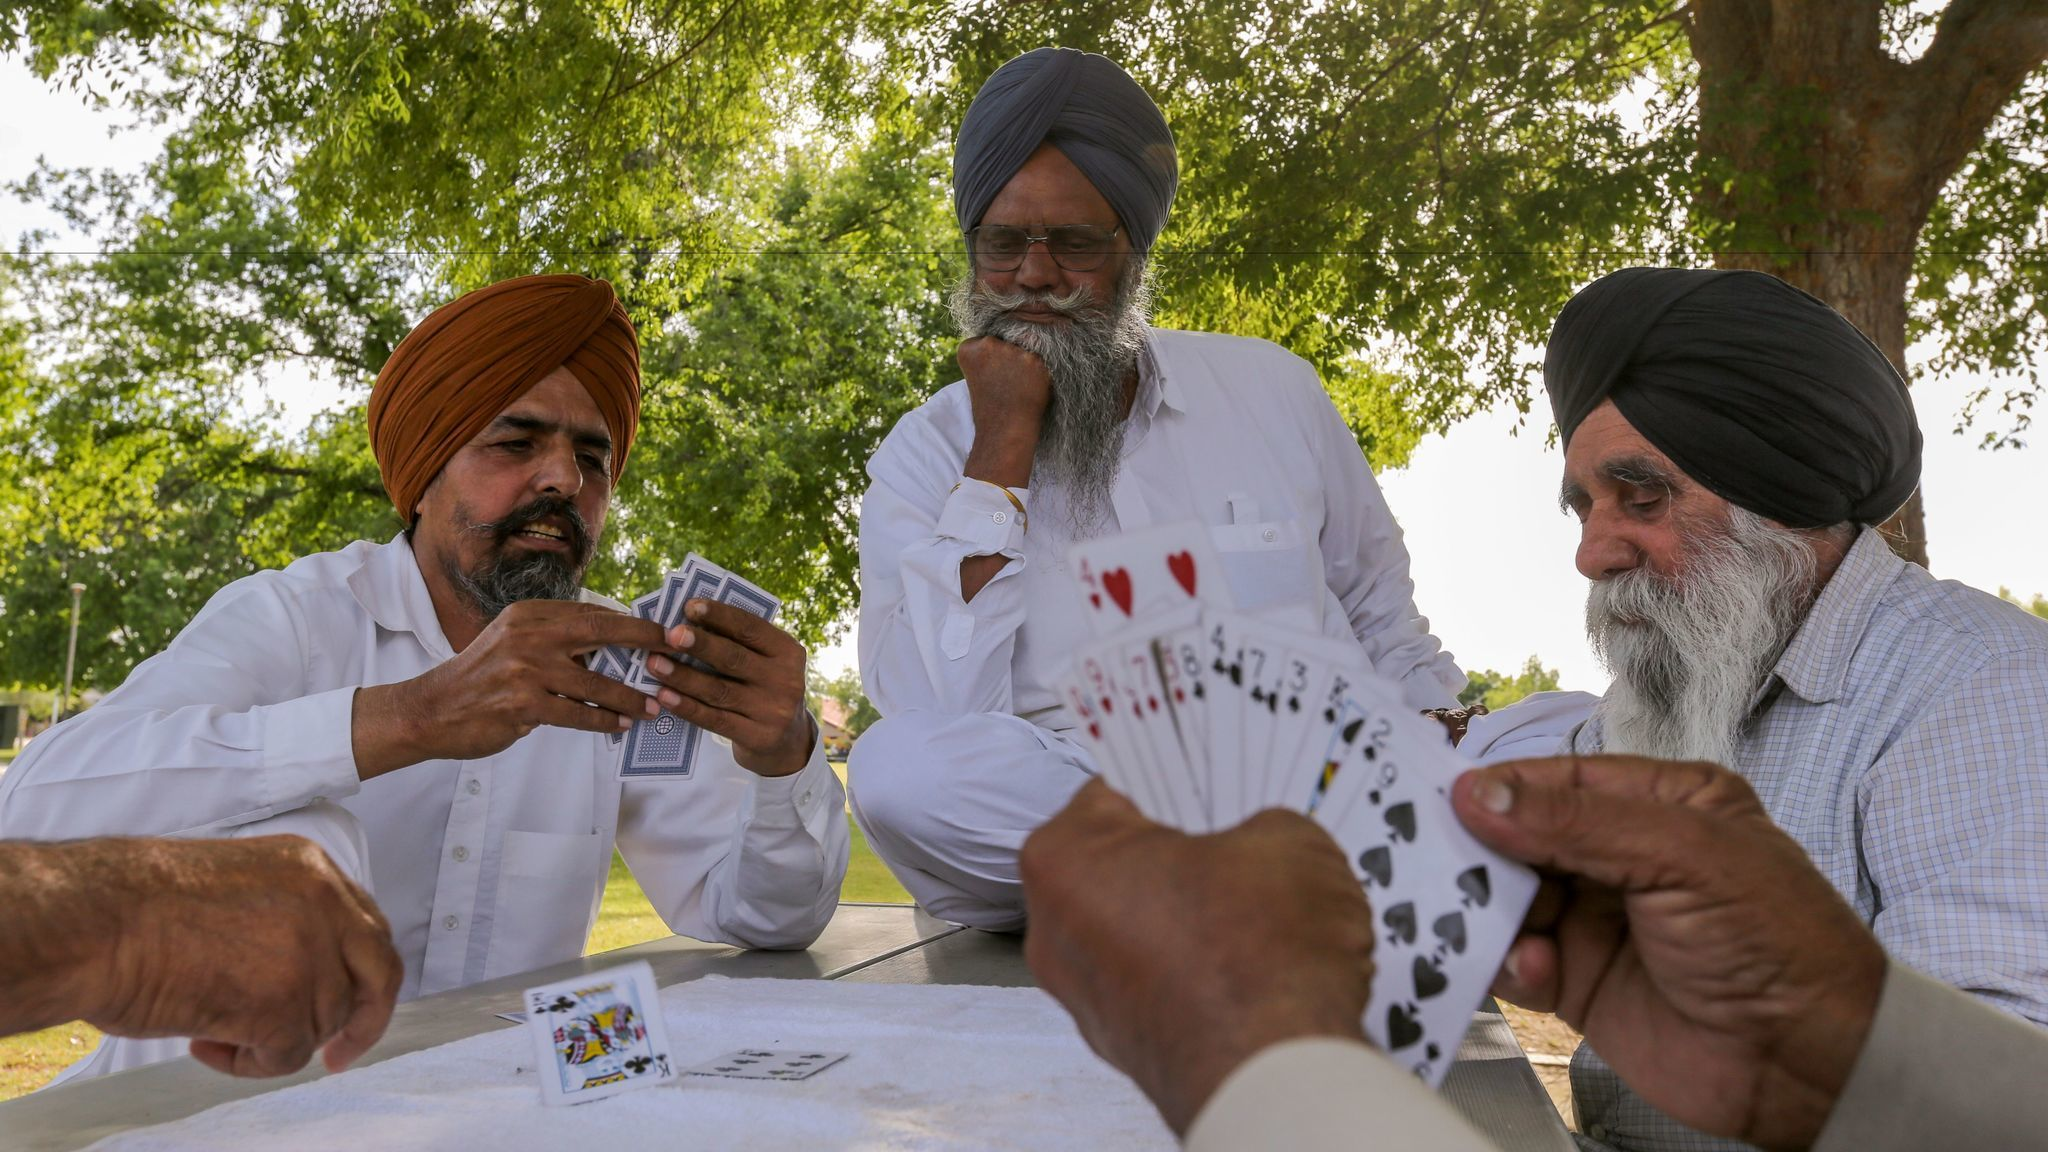 Sikh men play a card game in a neighborhood park in Bakersfield.